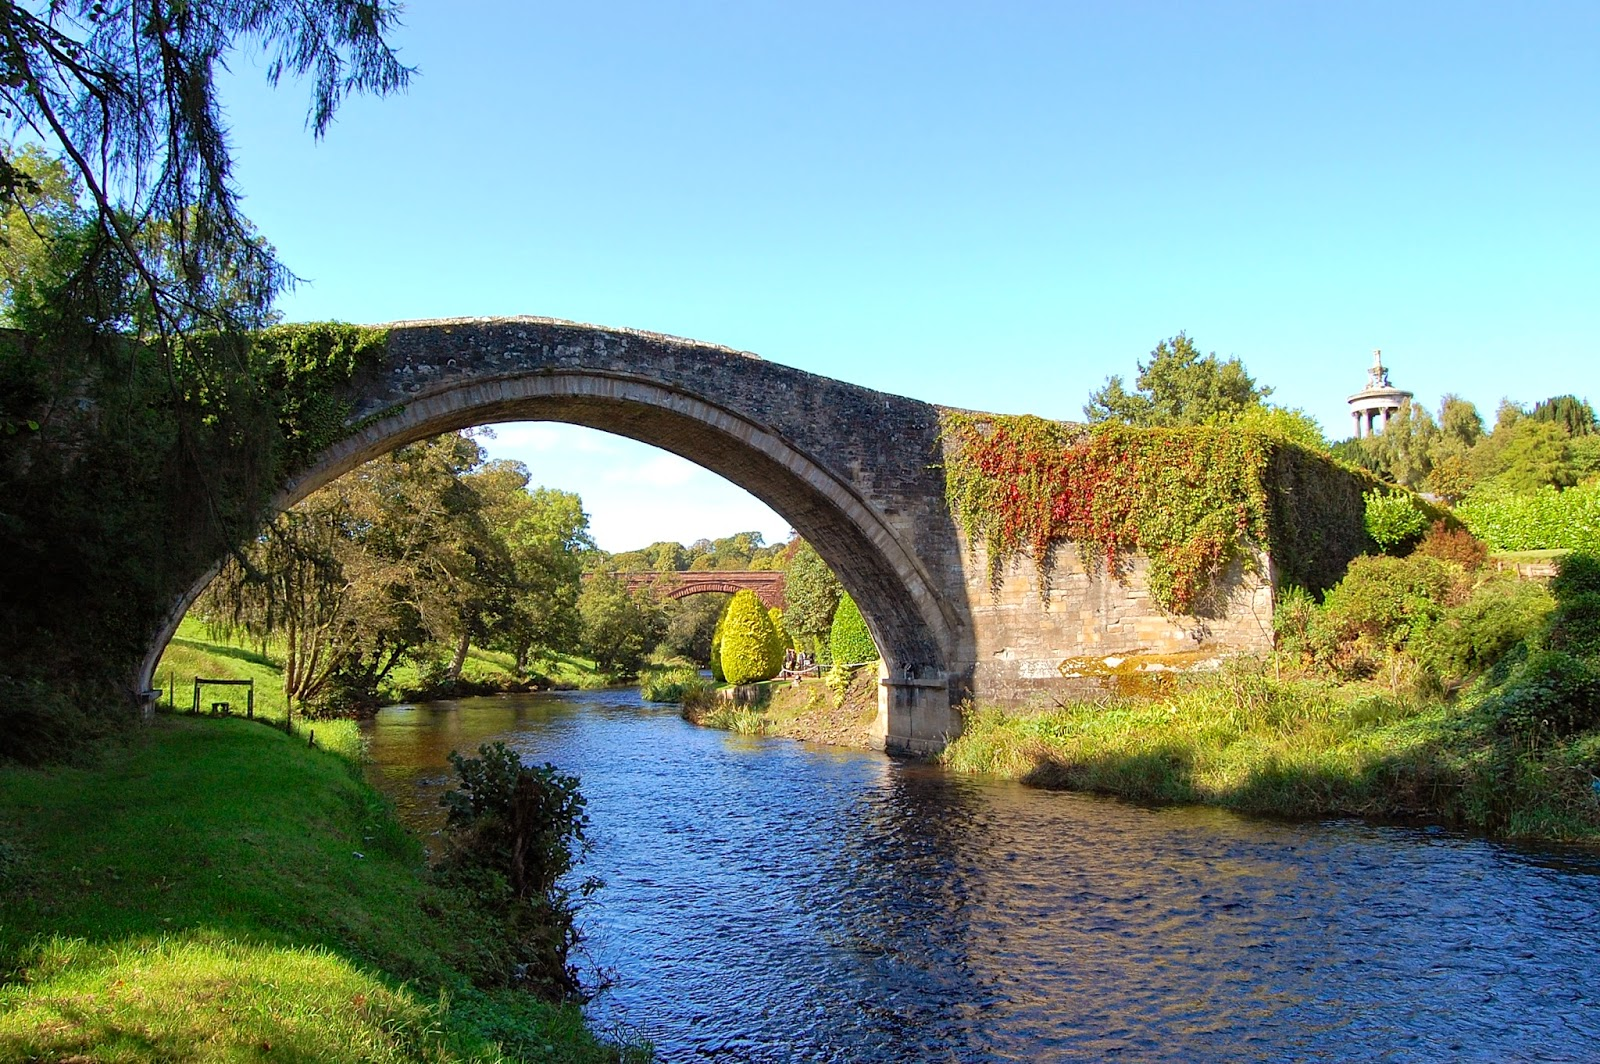 View of the Brig o' Doon from upstream